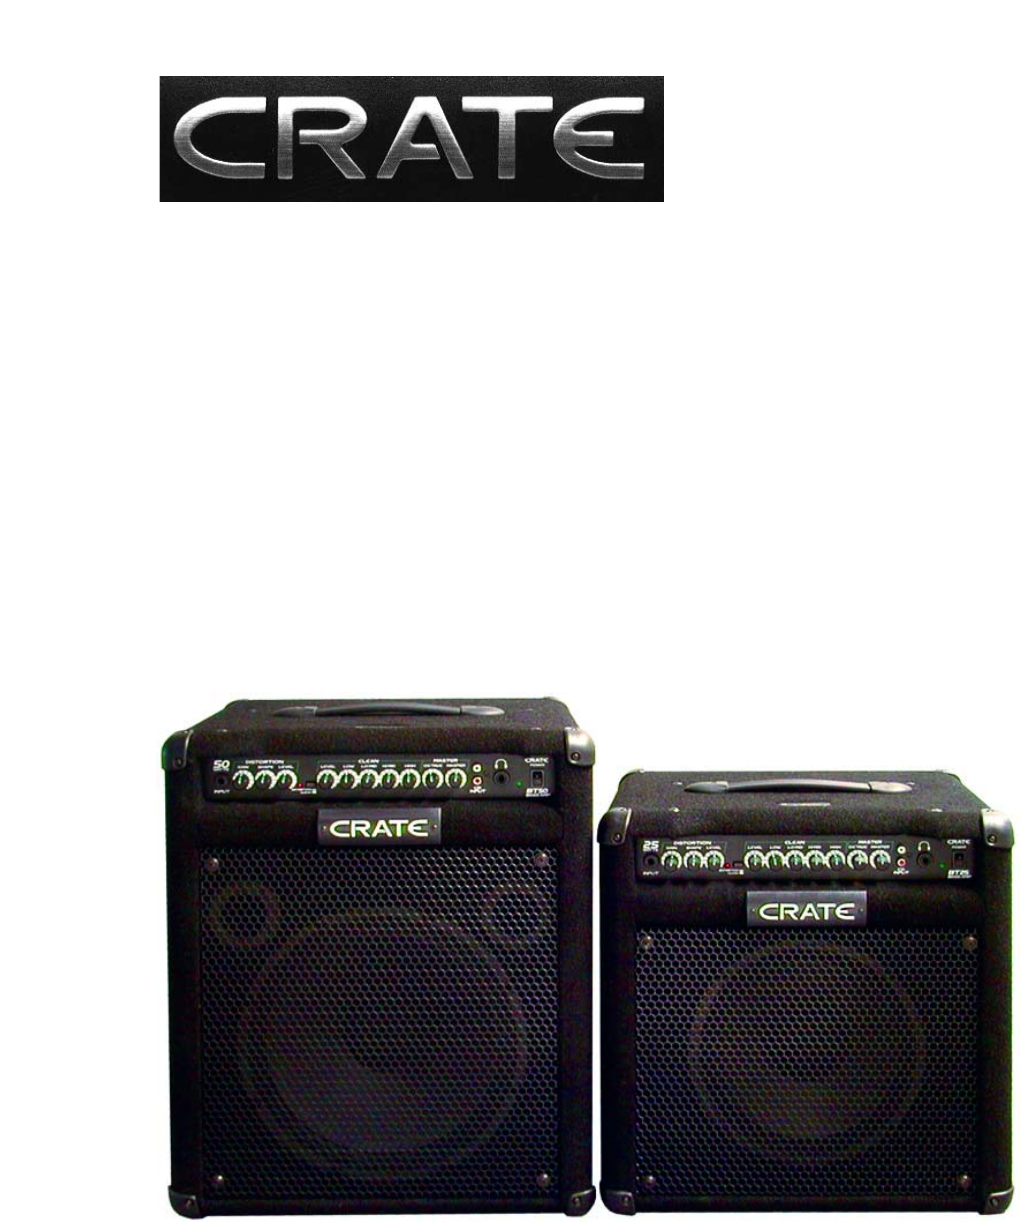 crate amplifiers speaker system bt25 bt50 user guide manualsonline com rh audio manualsonline com